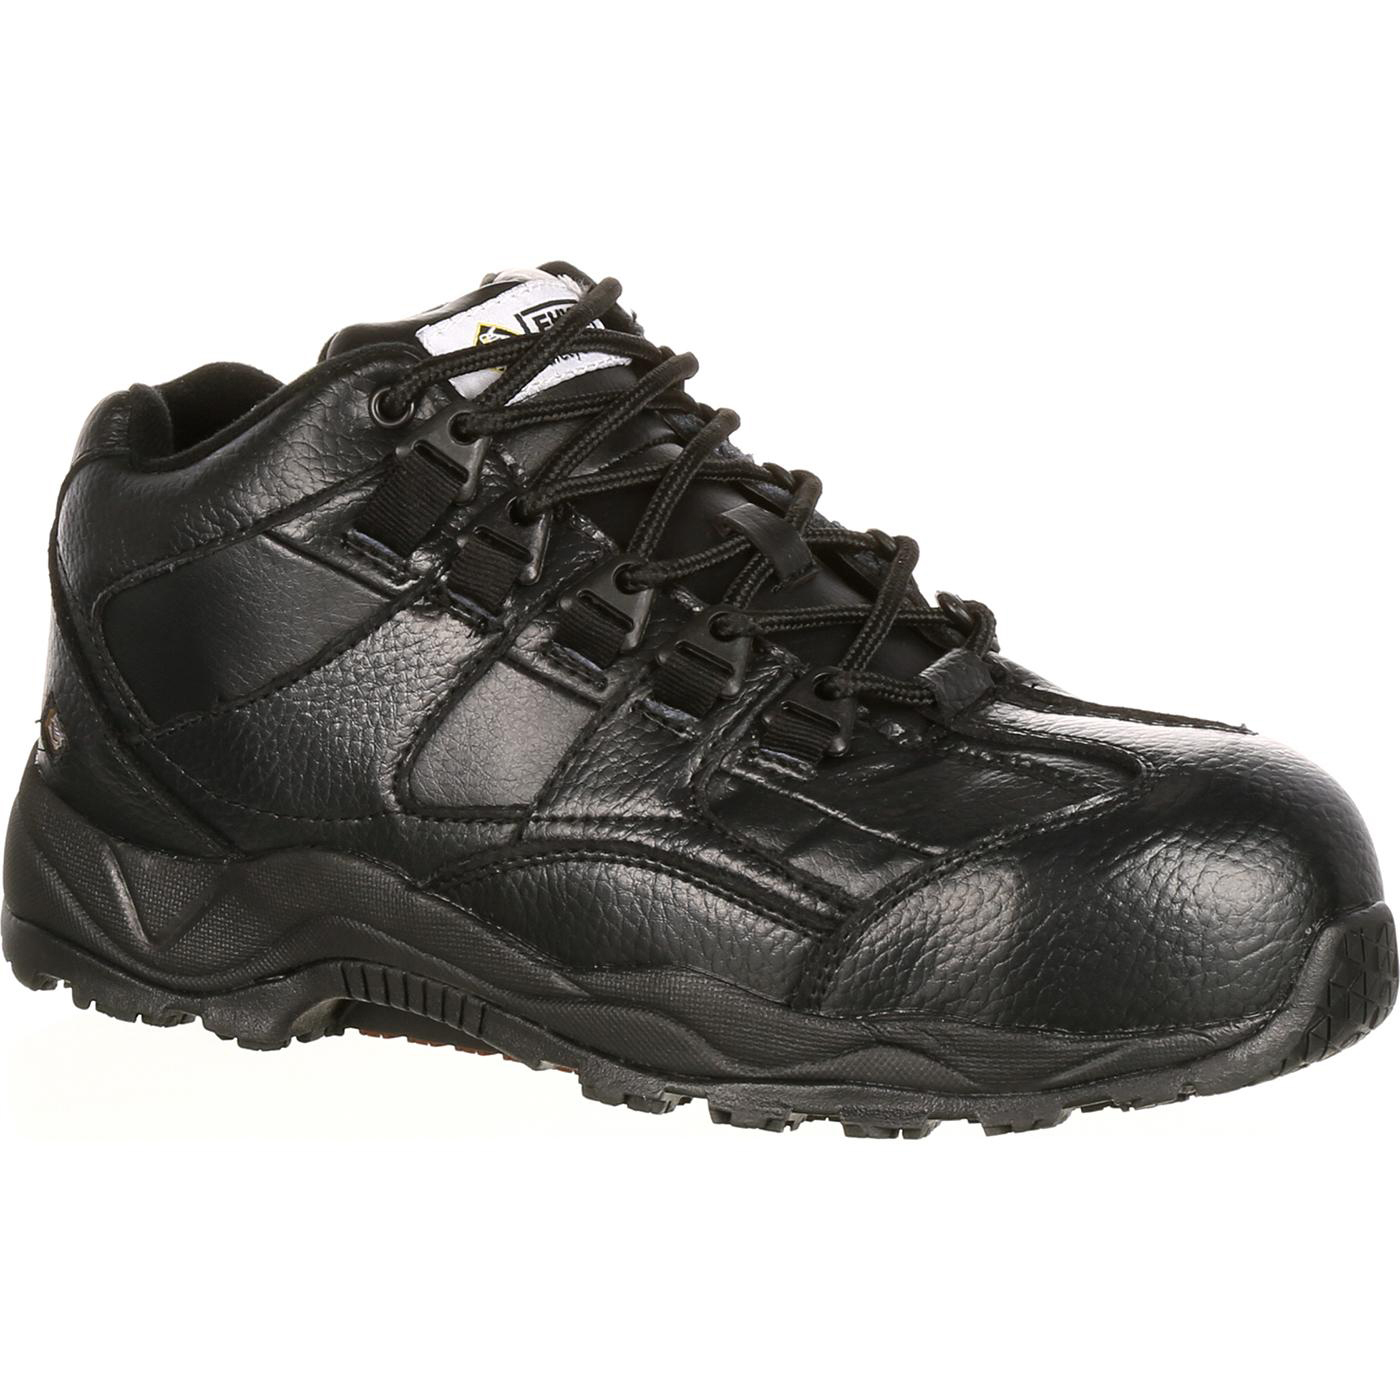 Black Composite Toe Hitop Hiker Lehigh Safety Shoes 6333